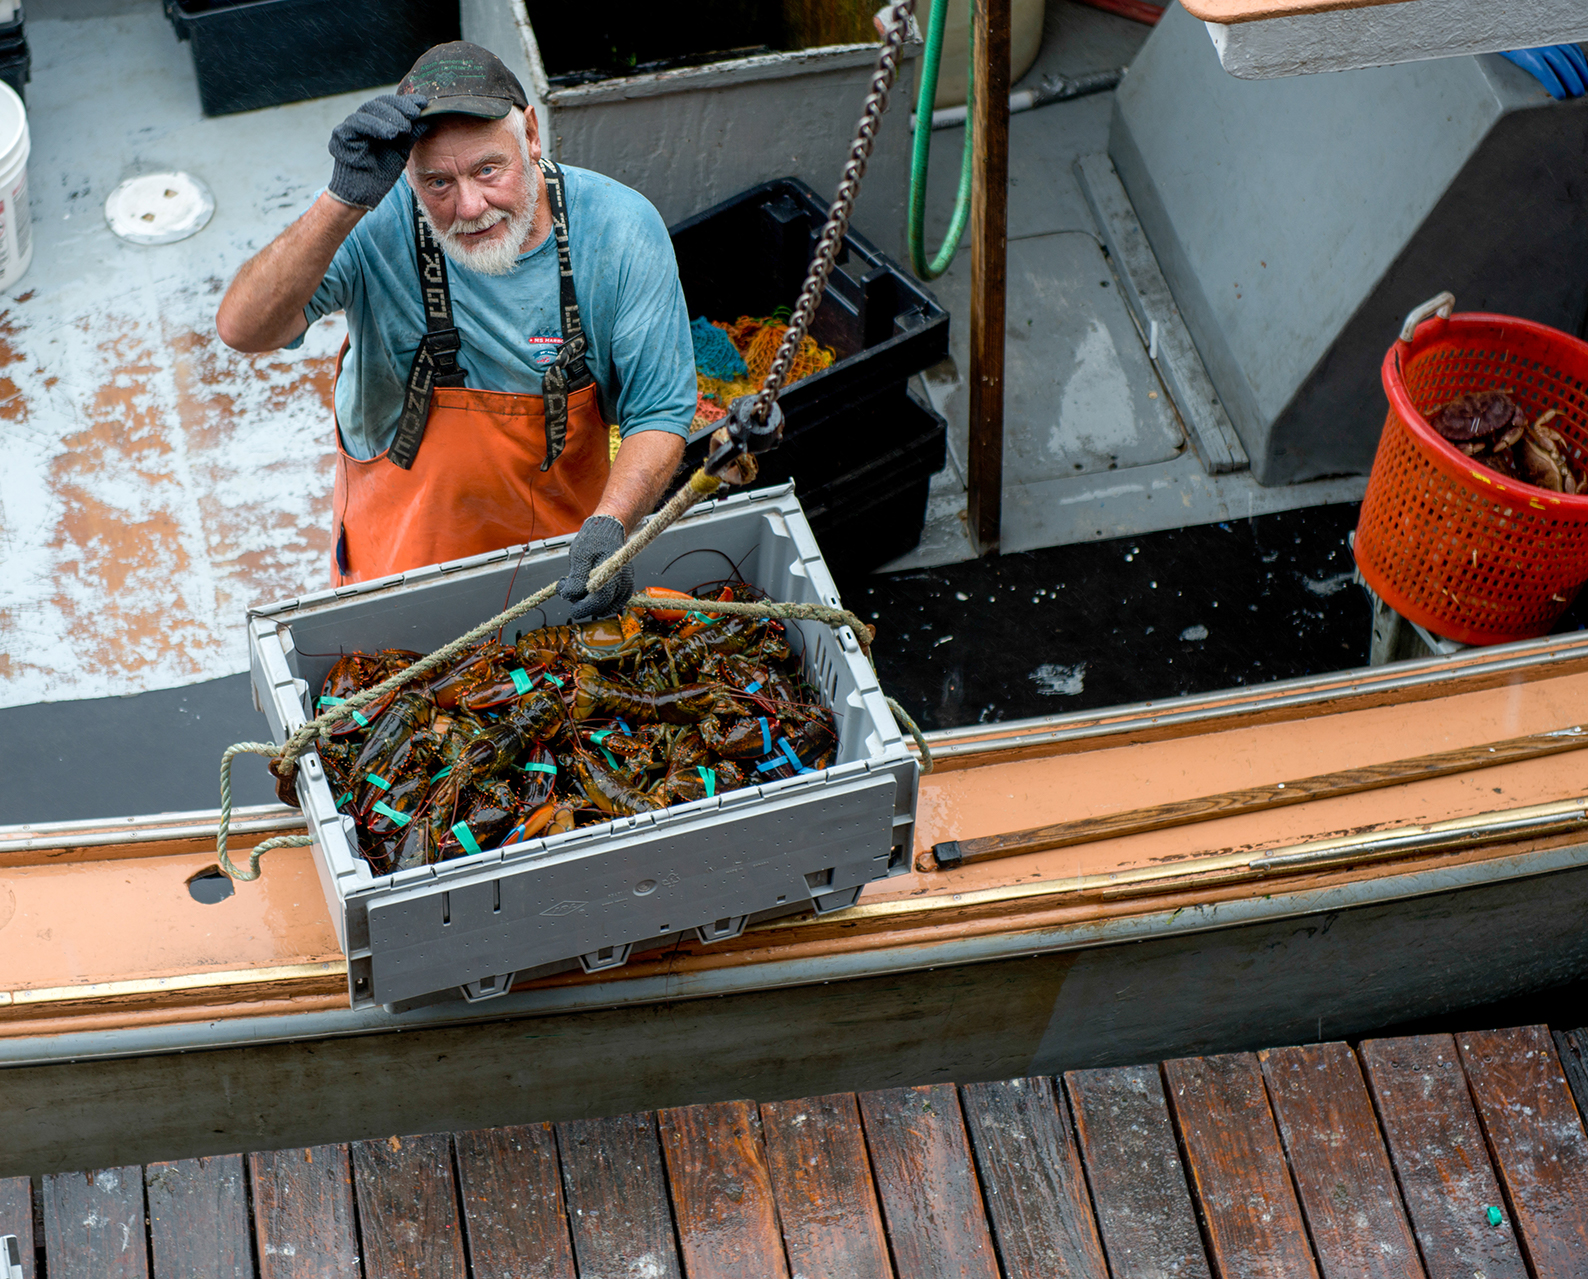 Buddy Olsen, a regular Harbor Fish supplier for 30 years